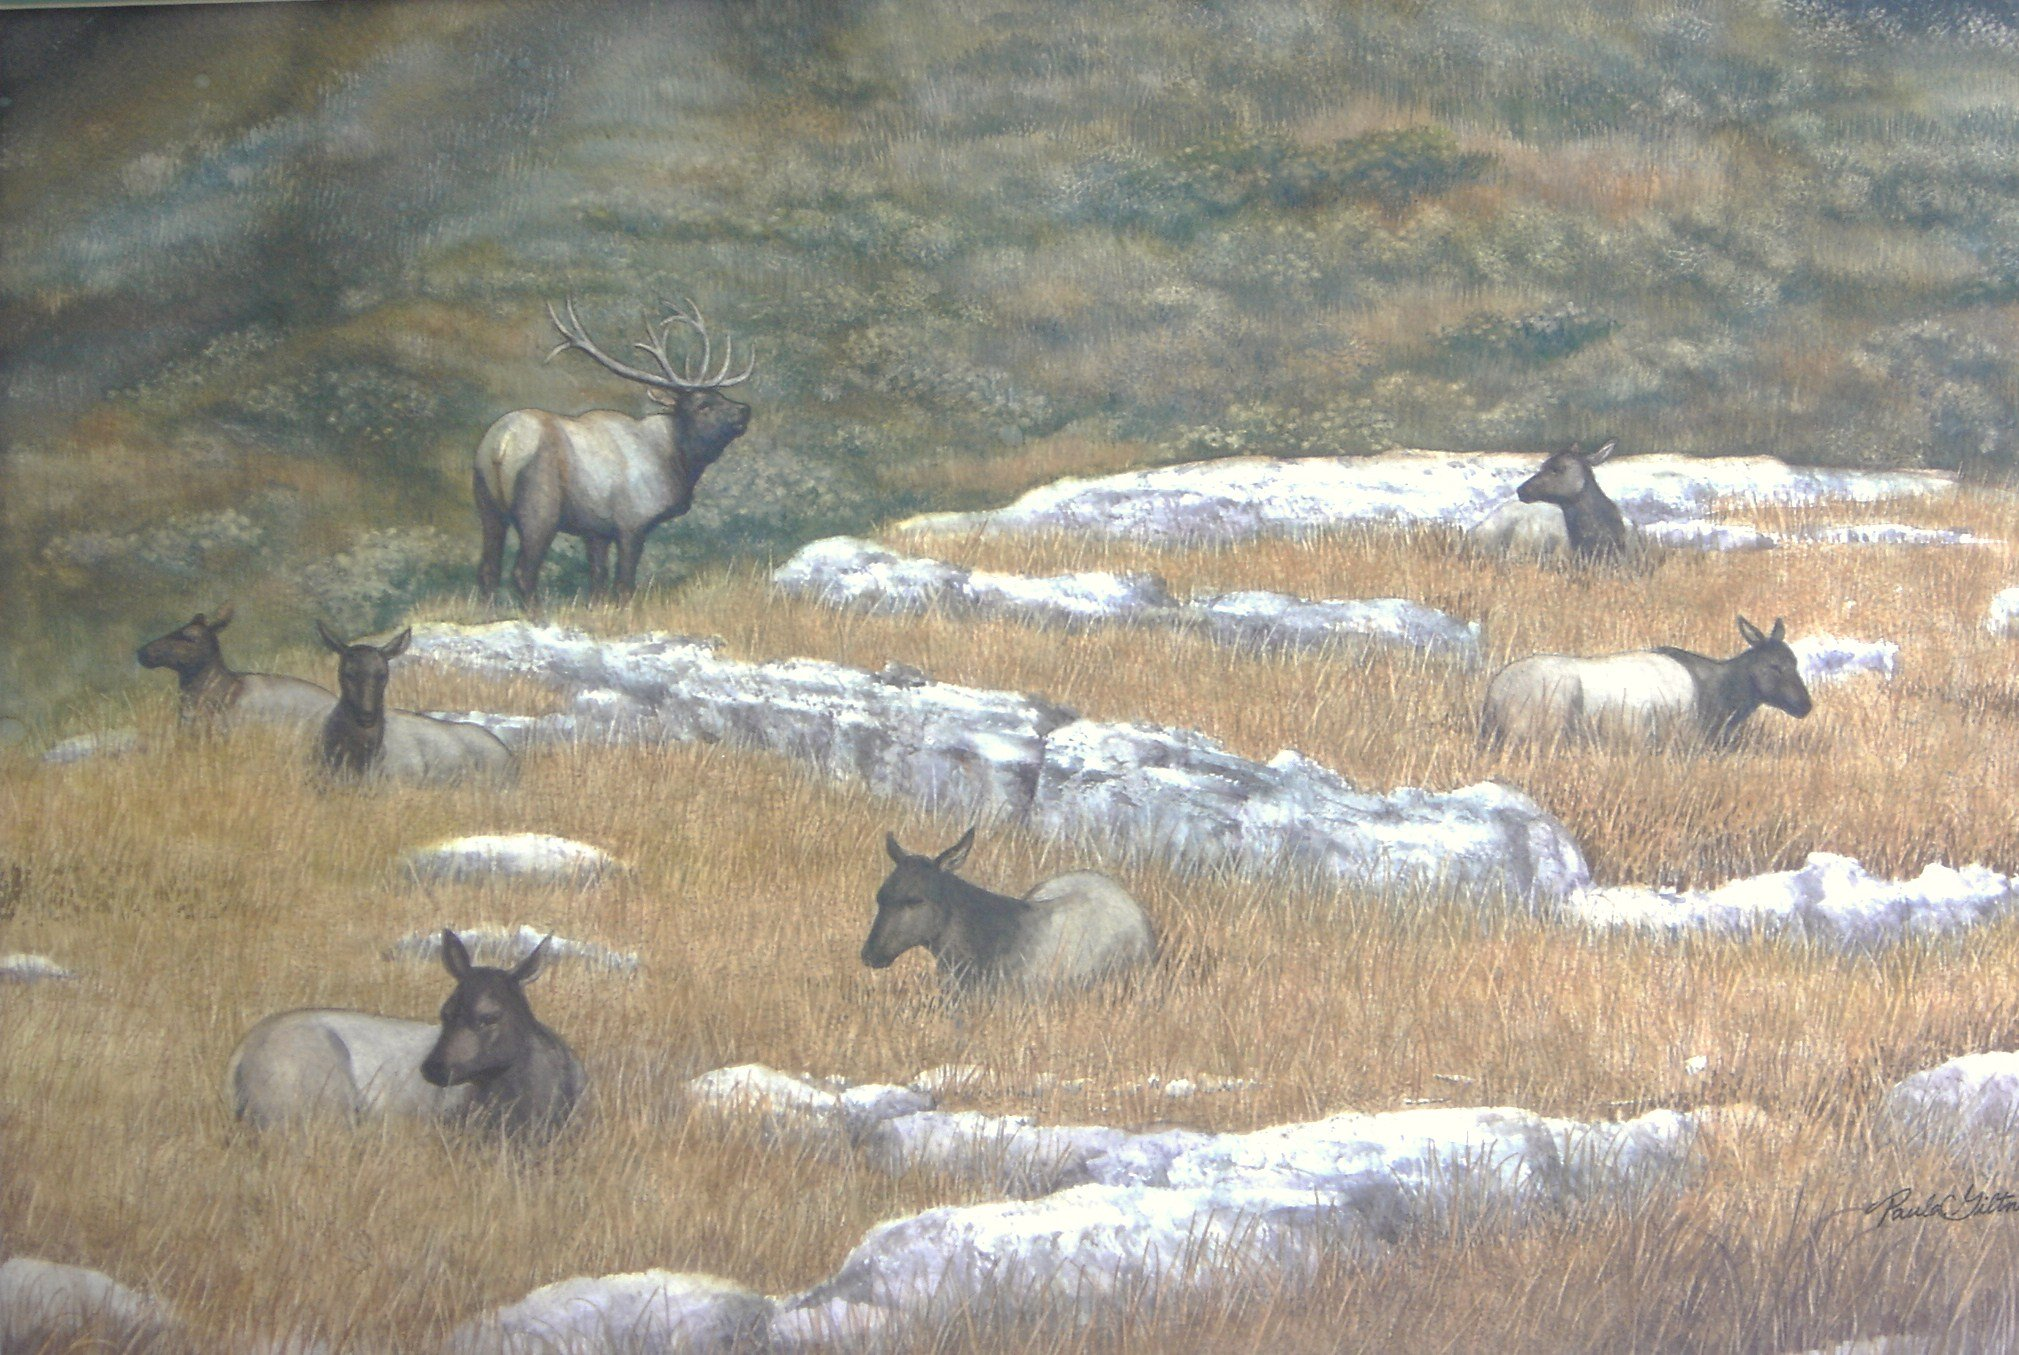 elks in yellowstone